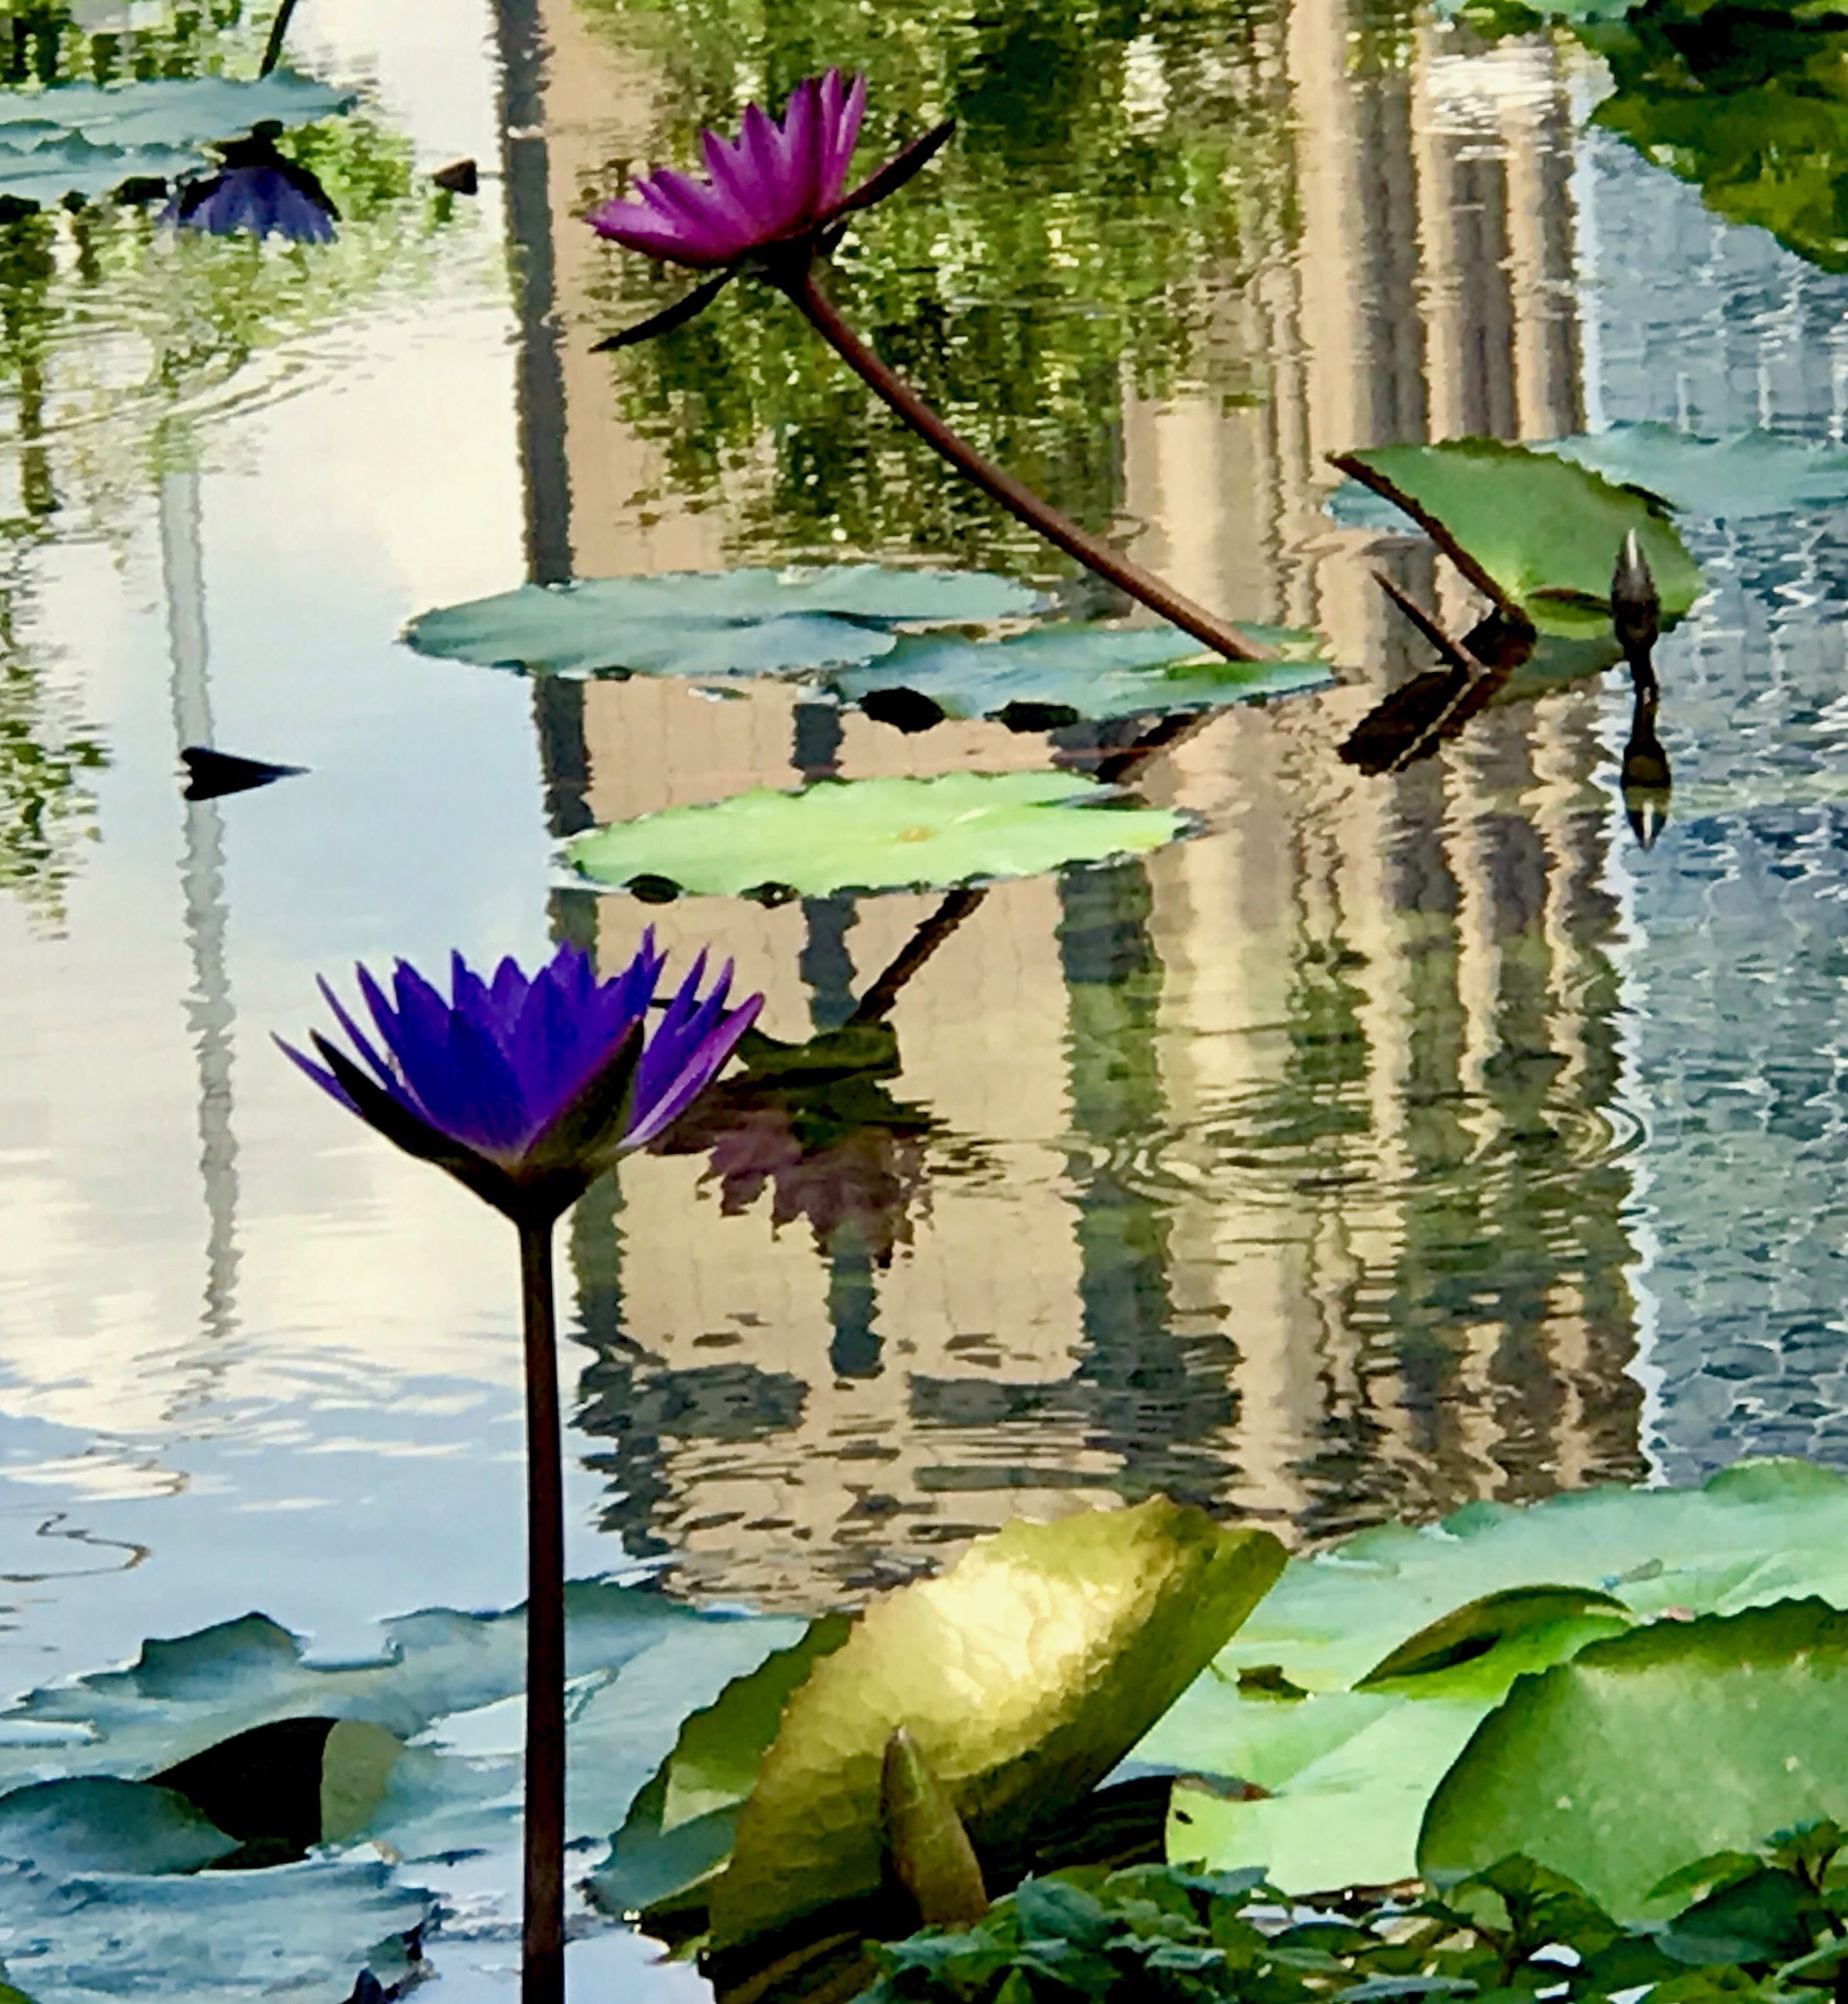 flower, water, beauty in nature, water lily, fragility, floating on water, lotus water lily, nature, petal, lily pad, reflection, flower head, growth, waterfront, plant, freshness, lake, outdoors, no people, tranquility, leaf, blossom, blooming, lotus, day